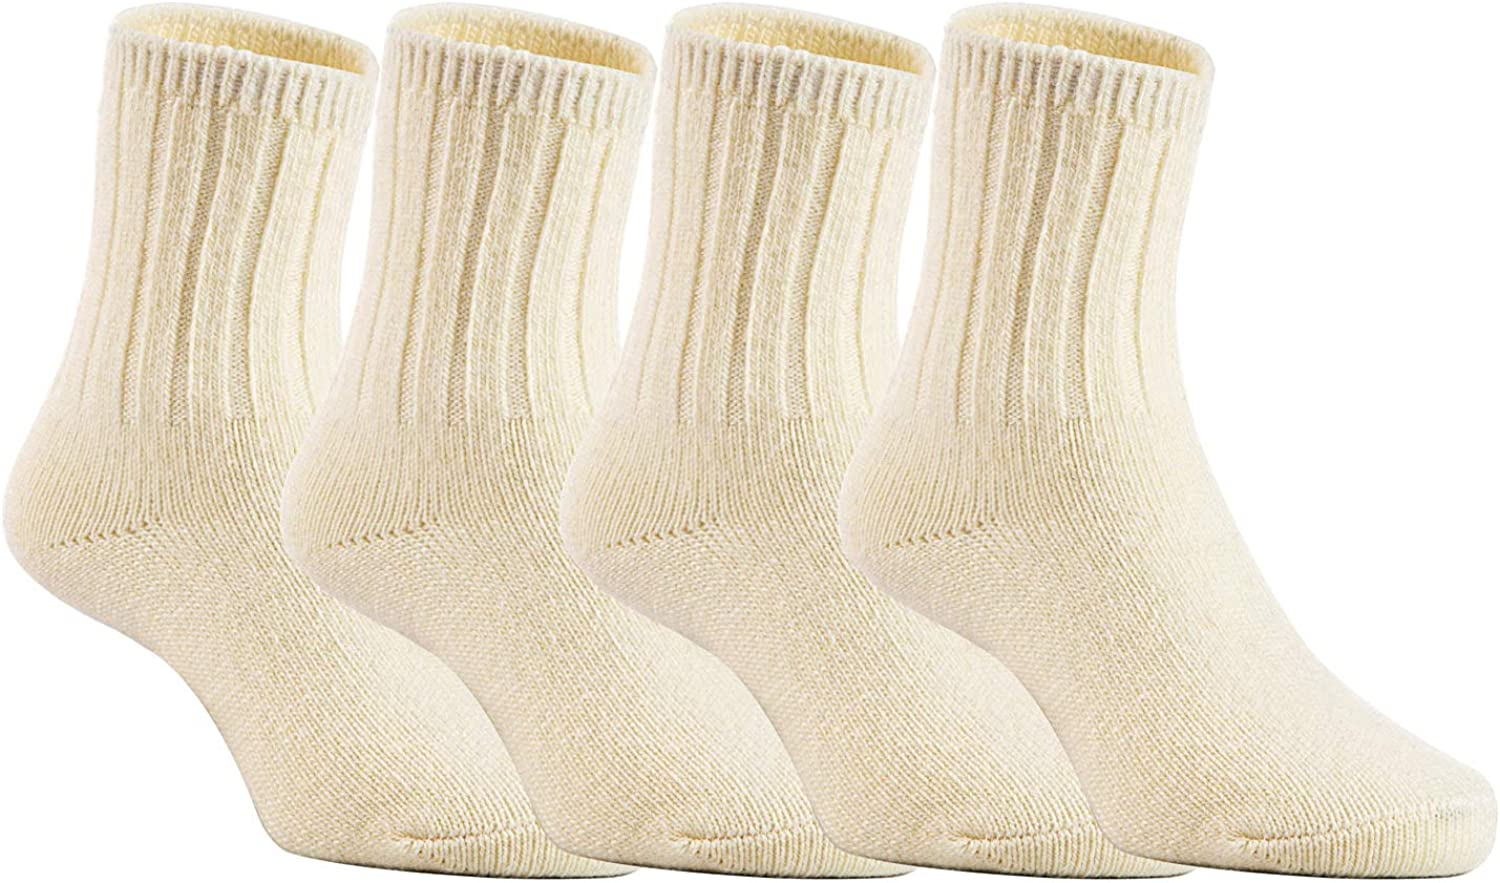 Stretchable Wool Crew Socks Size 0Y-6Y Durable 4 Pairs Childrens Comfy